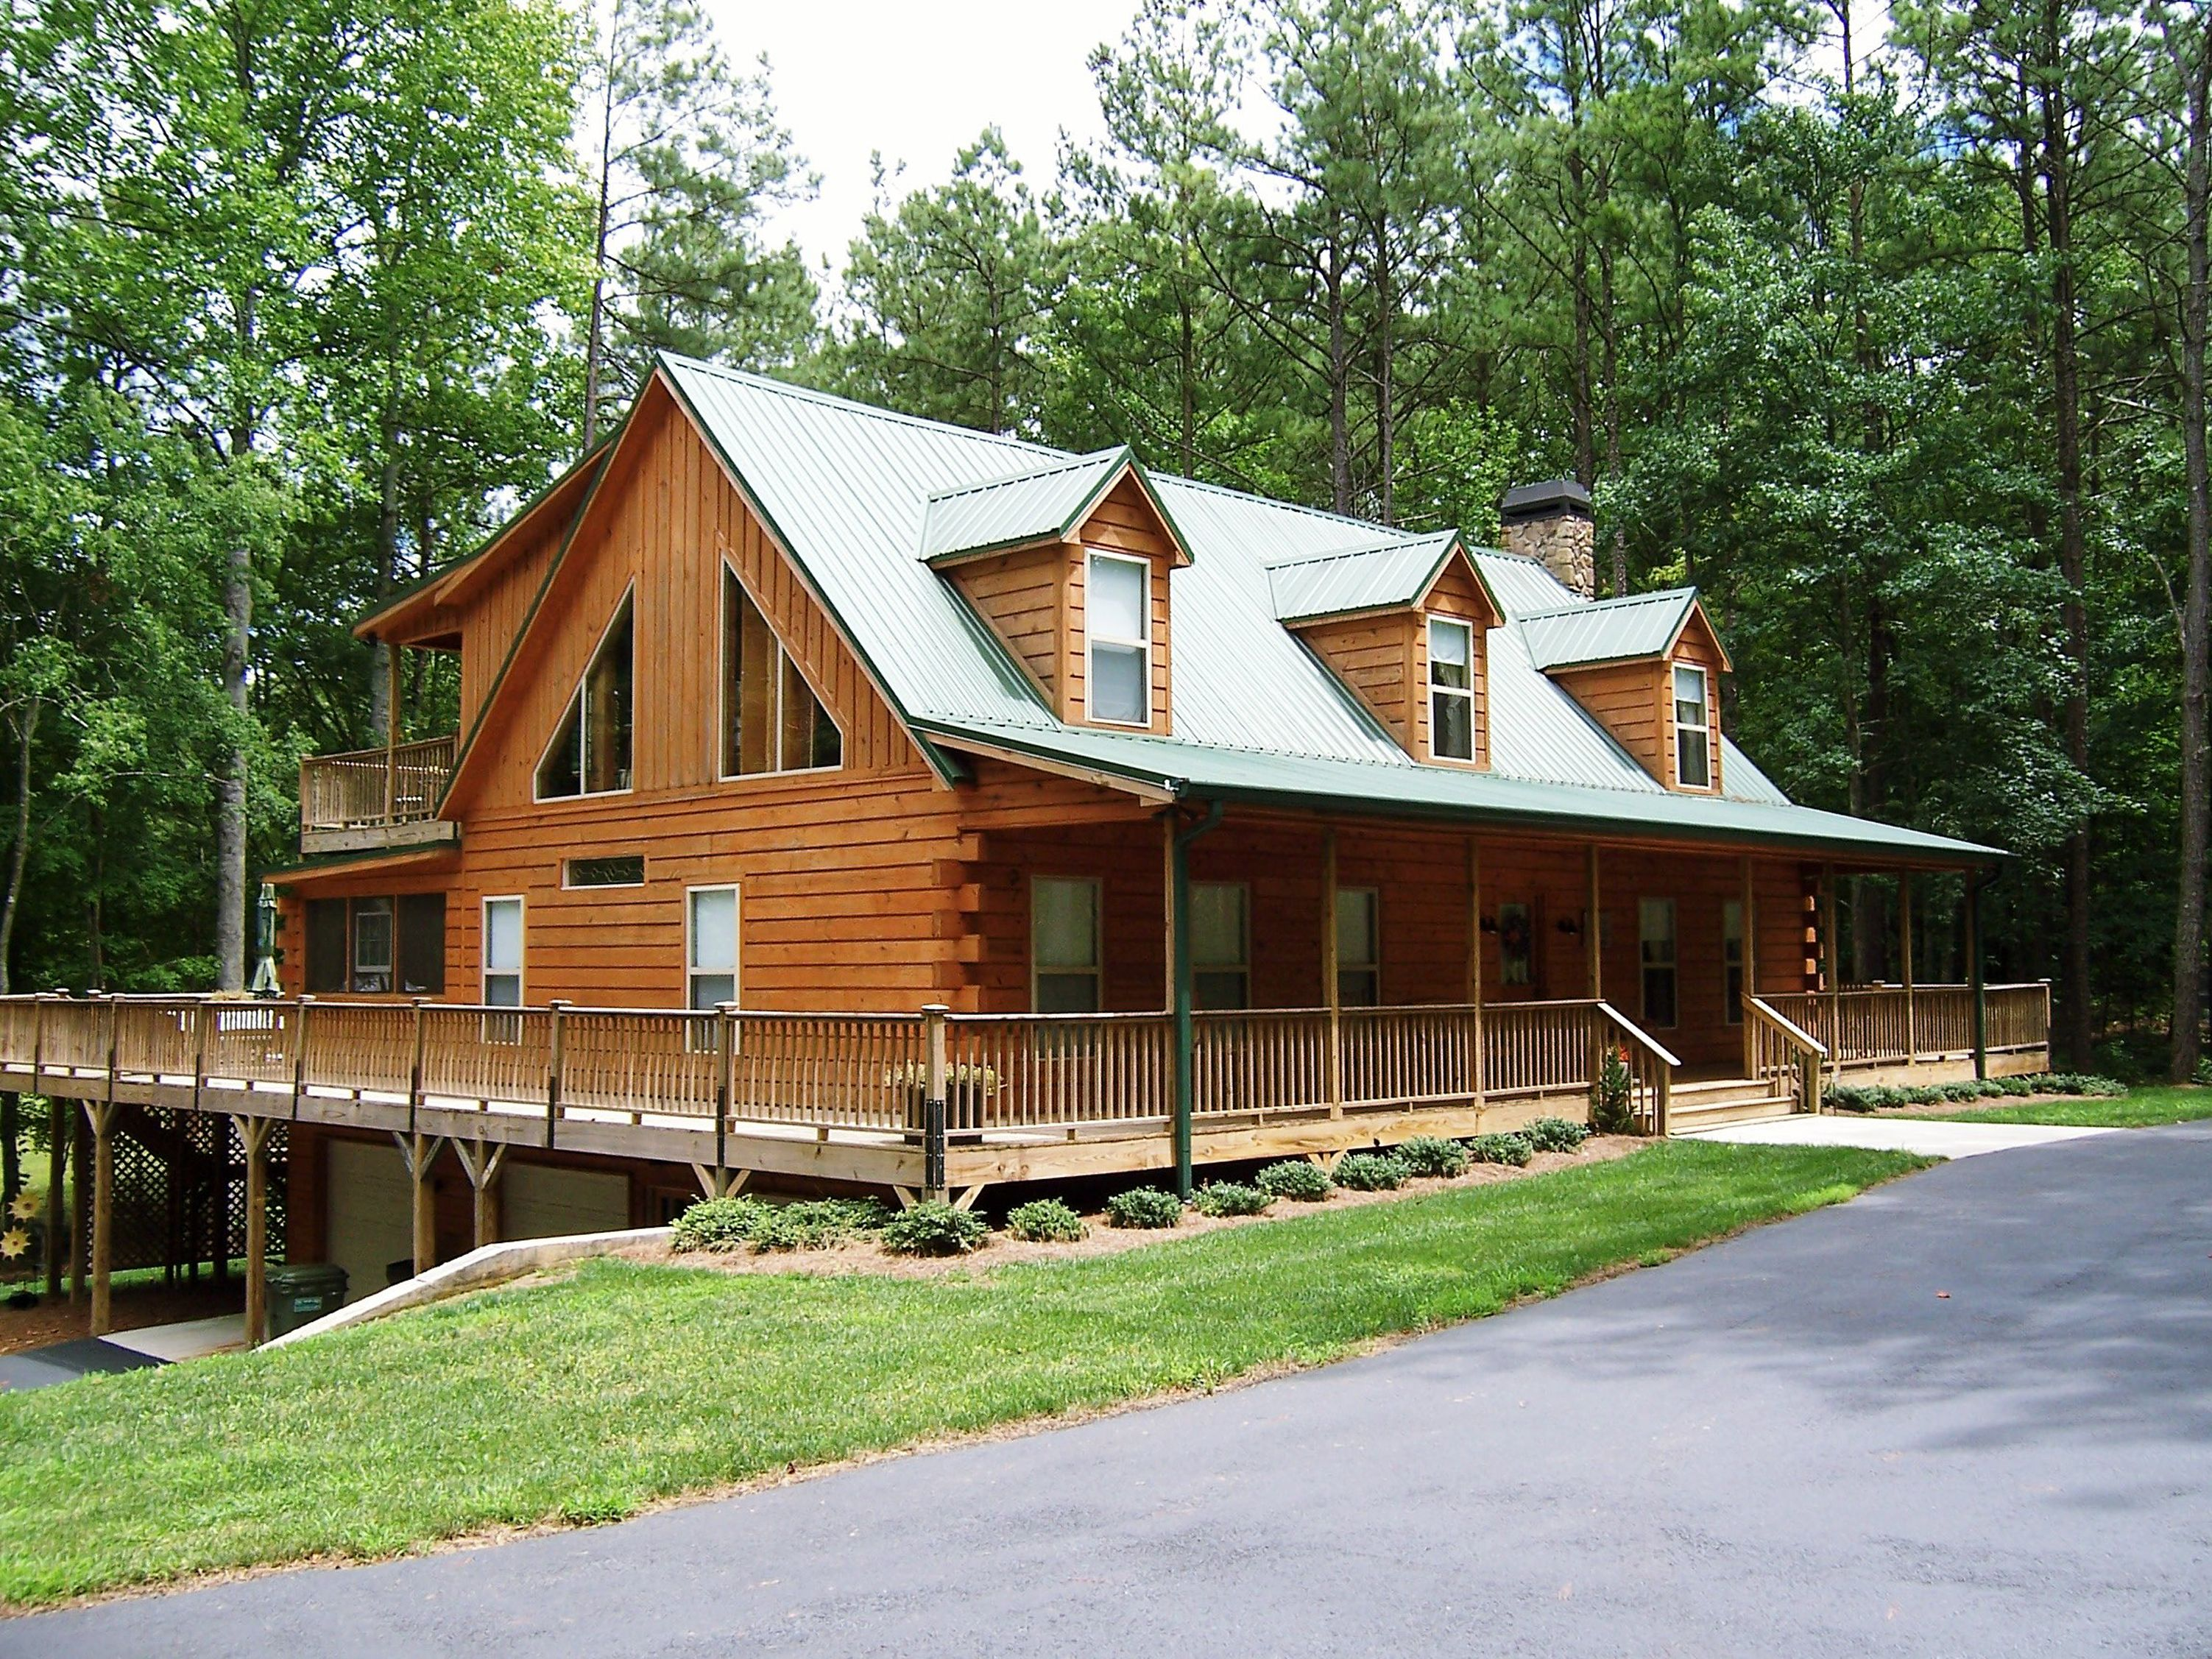 Modular Cabin With Split Log Siding By Nationwide Homes